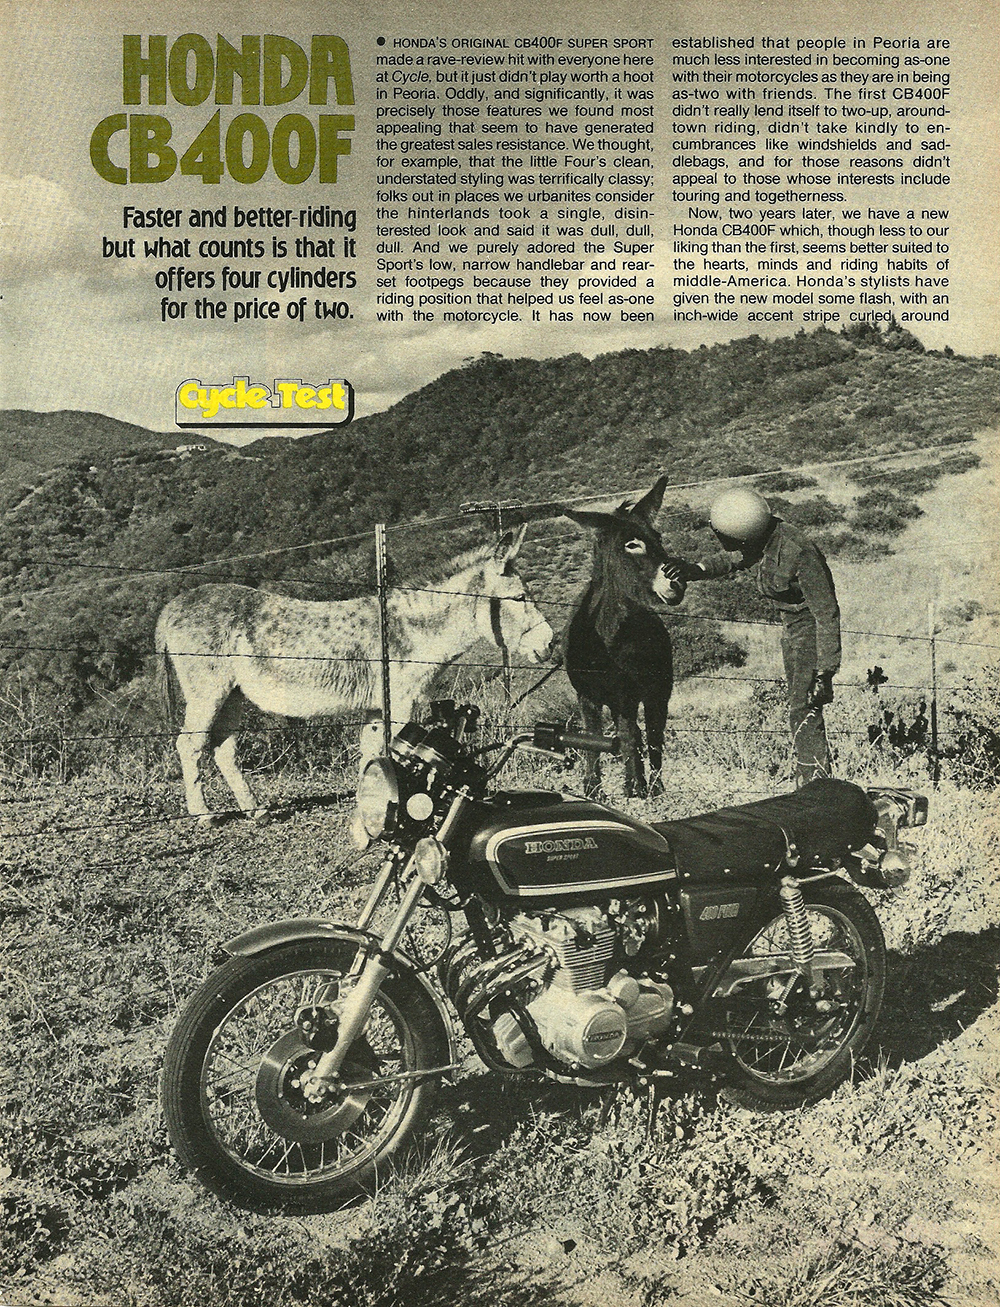 1977 Honda CB400F road test 01.jpg